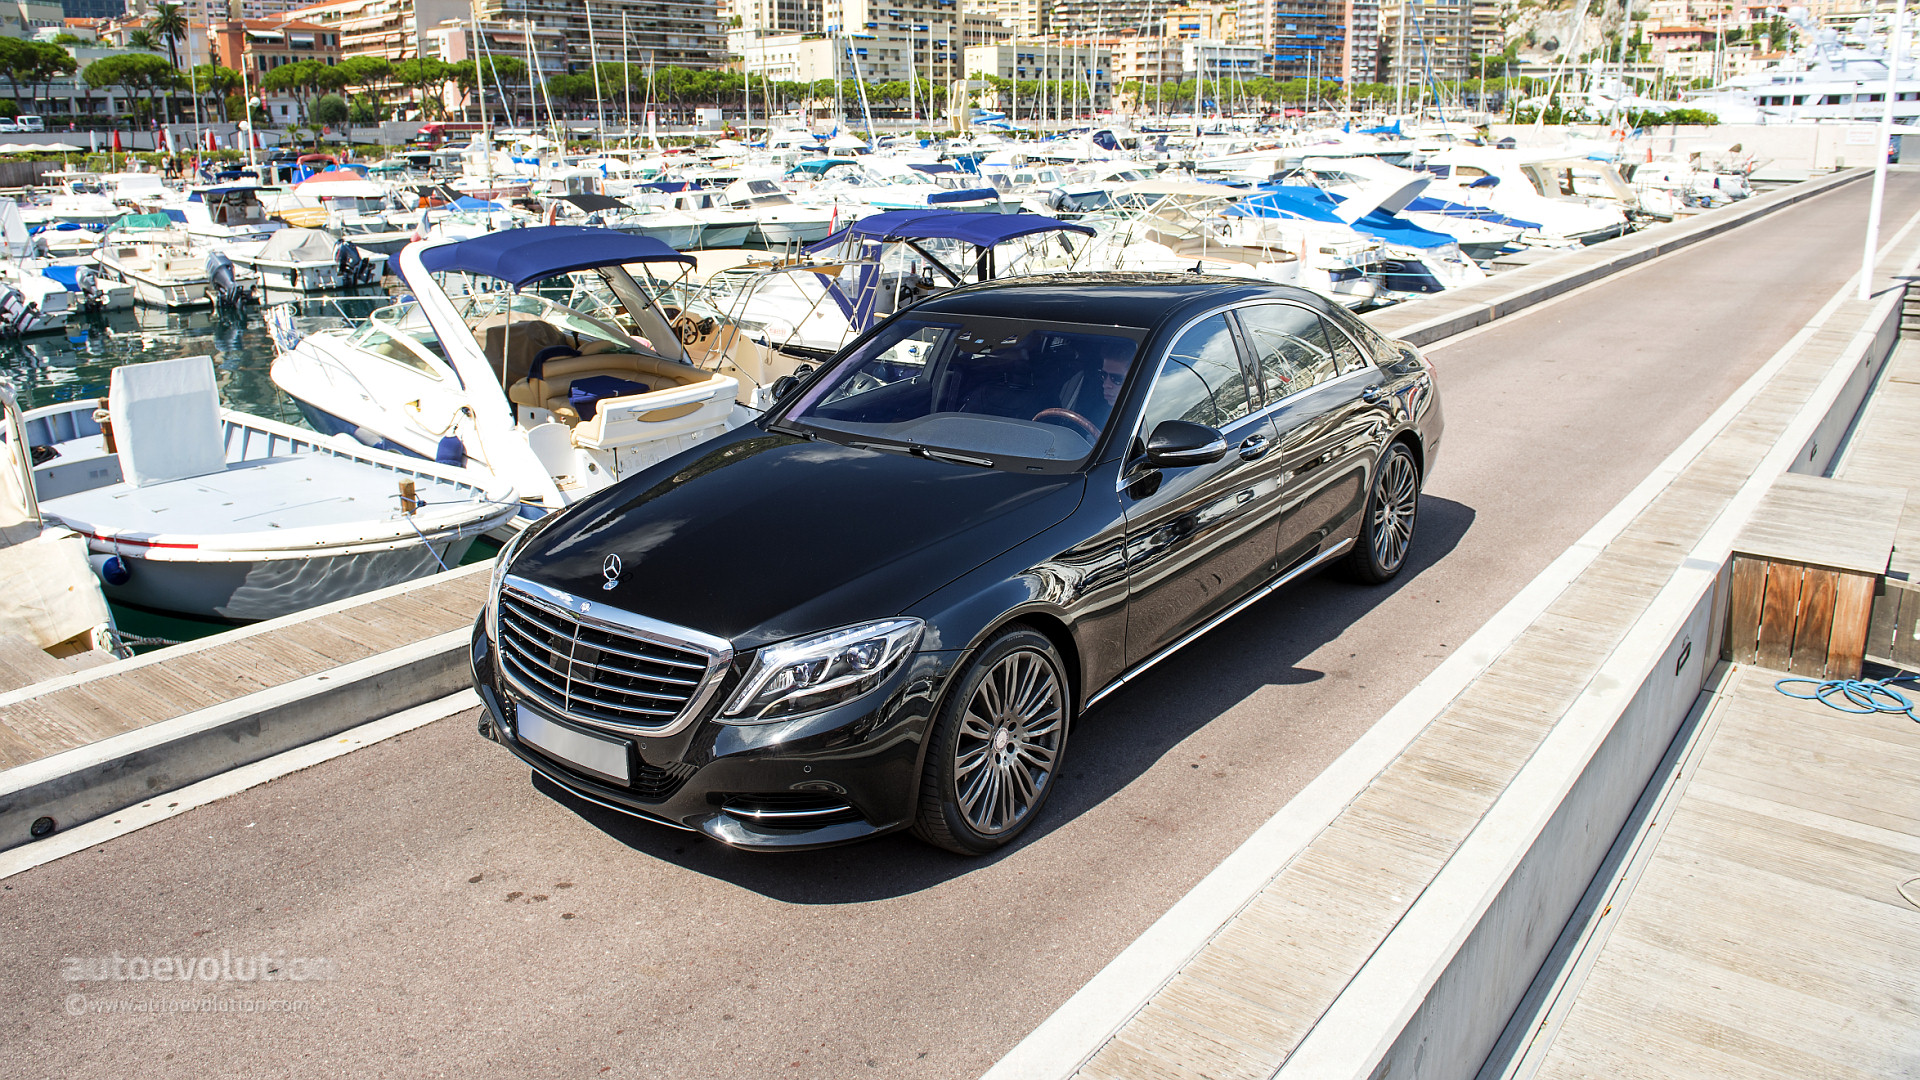 2014 mercedes benz s550 tested autoevolution for How much is a 2014 mercedes benz